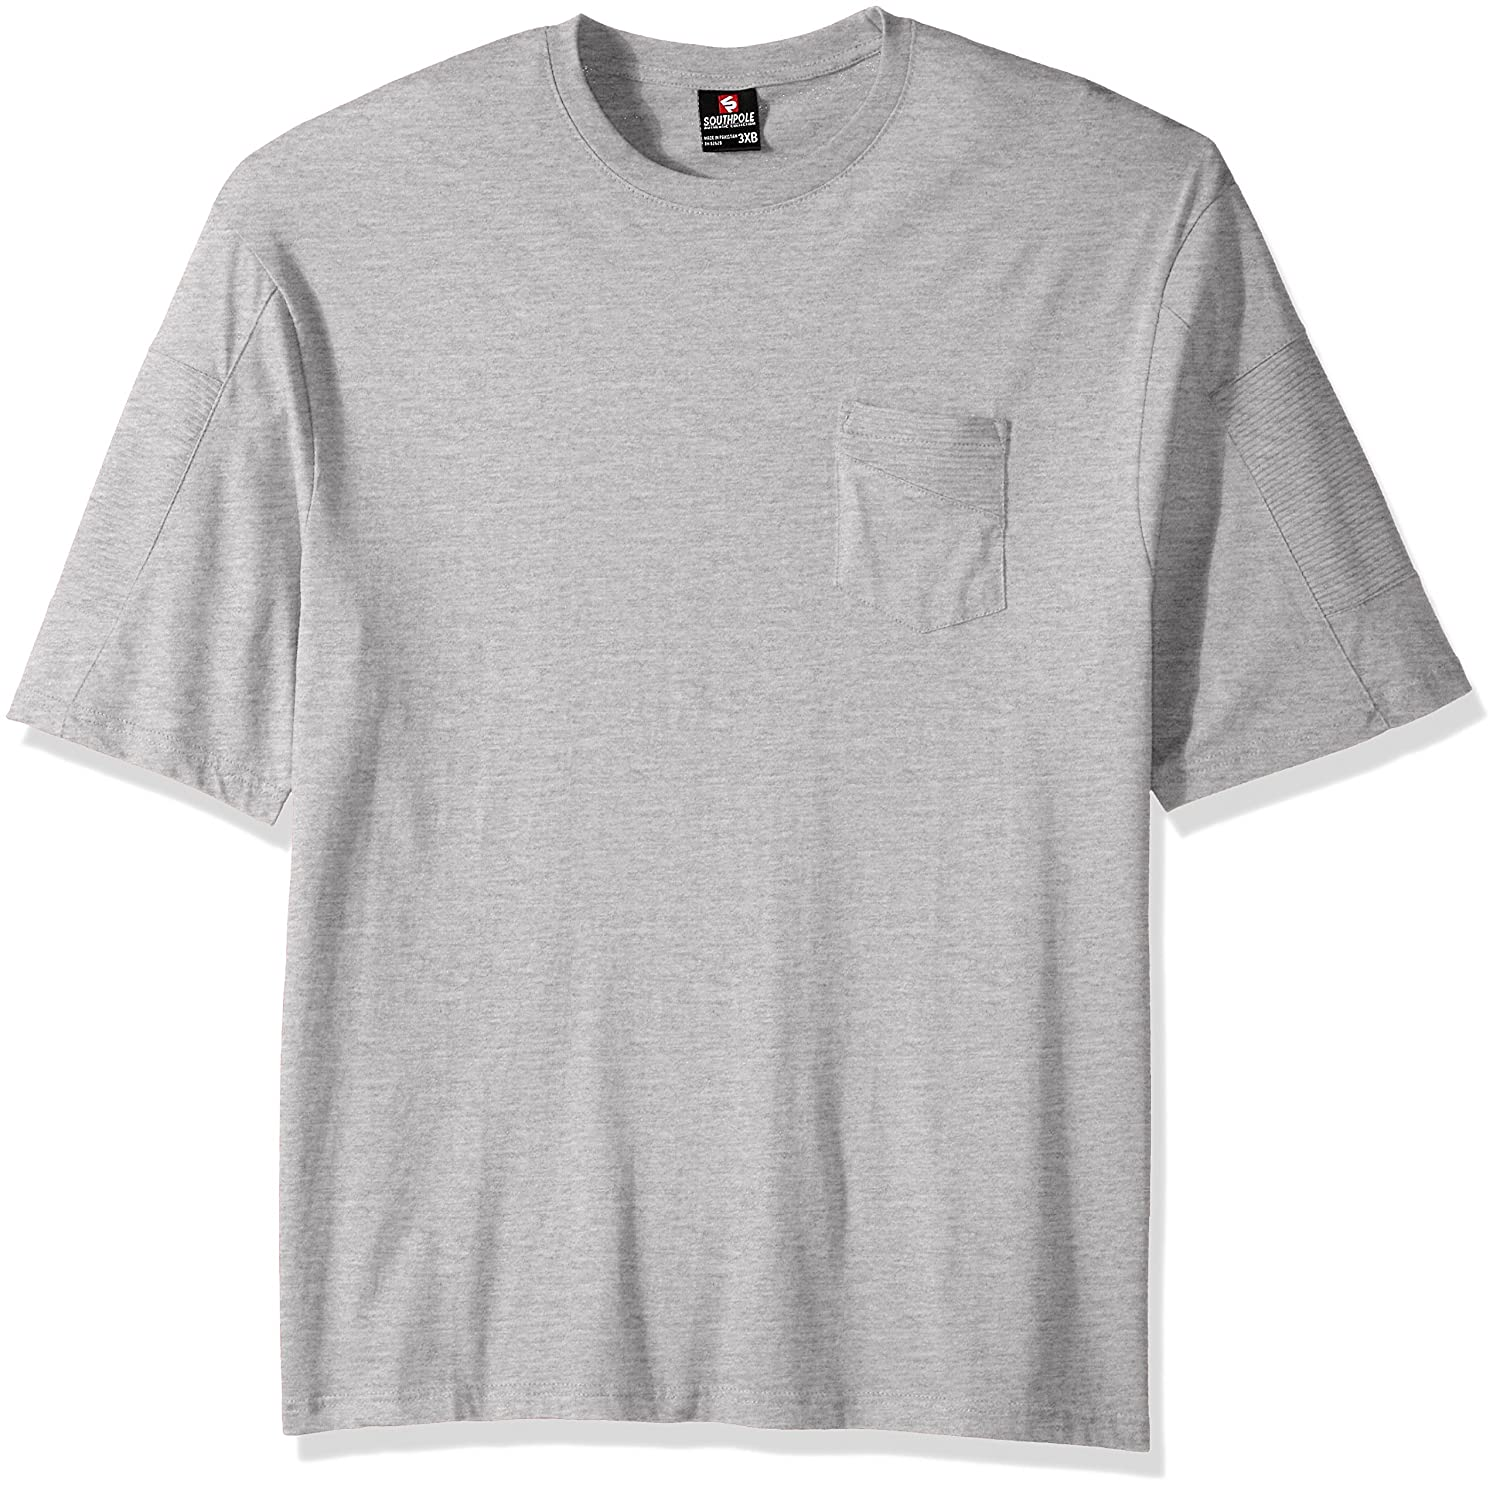 Southpole Men's Big and Tall Short Sleeve Tee with Moto Biker Details on Sleeves